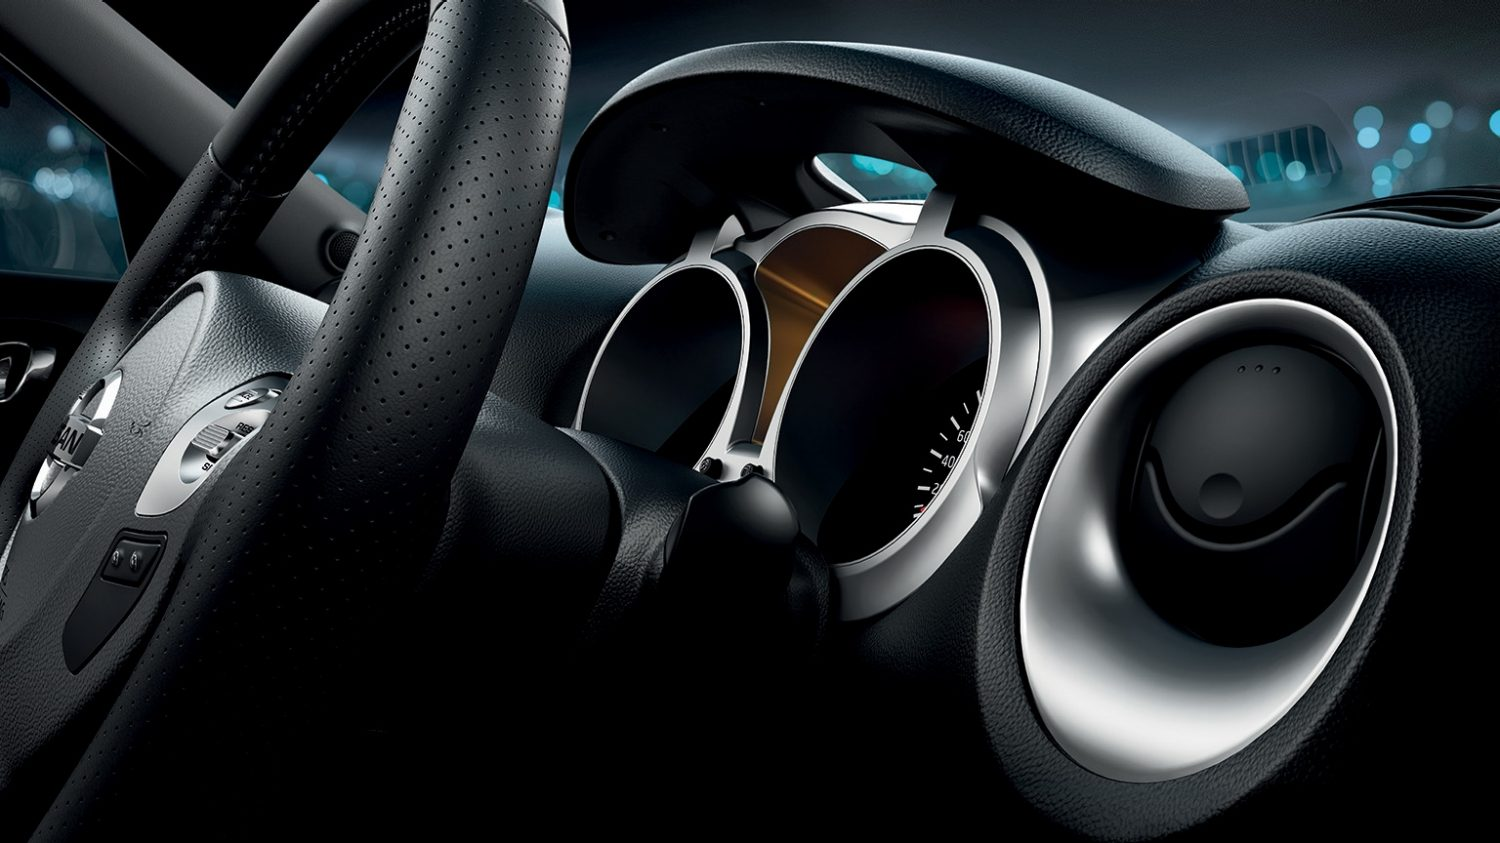 Compact & mini SUV design - Hooded gauges | Nissan Juke